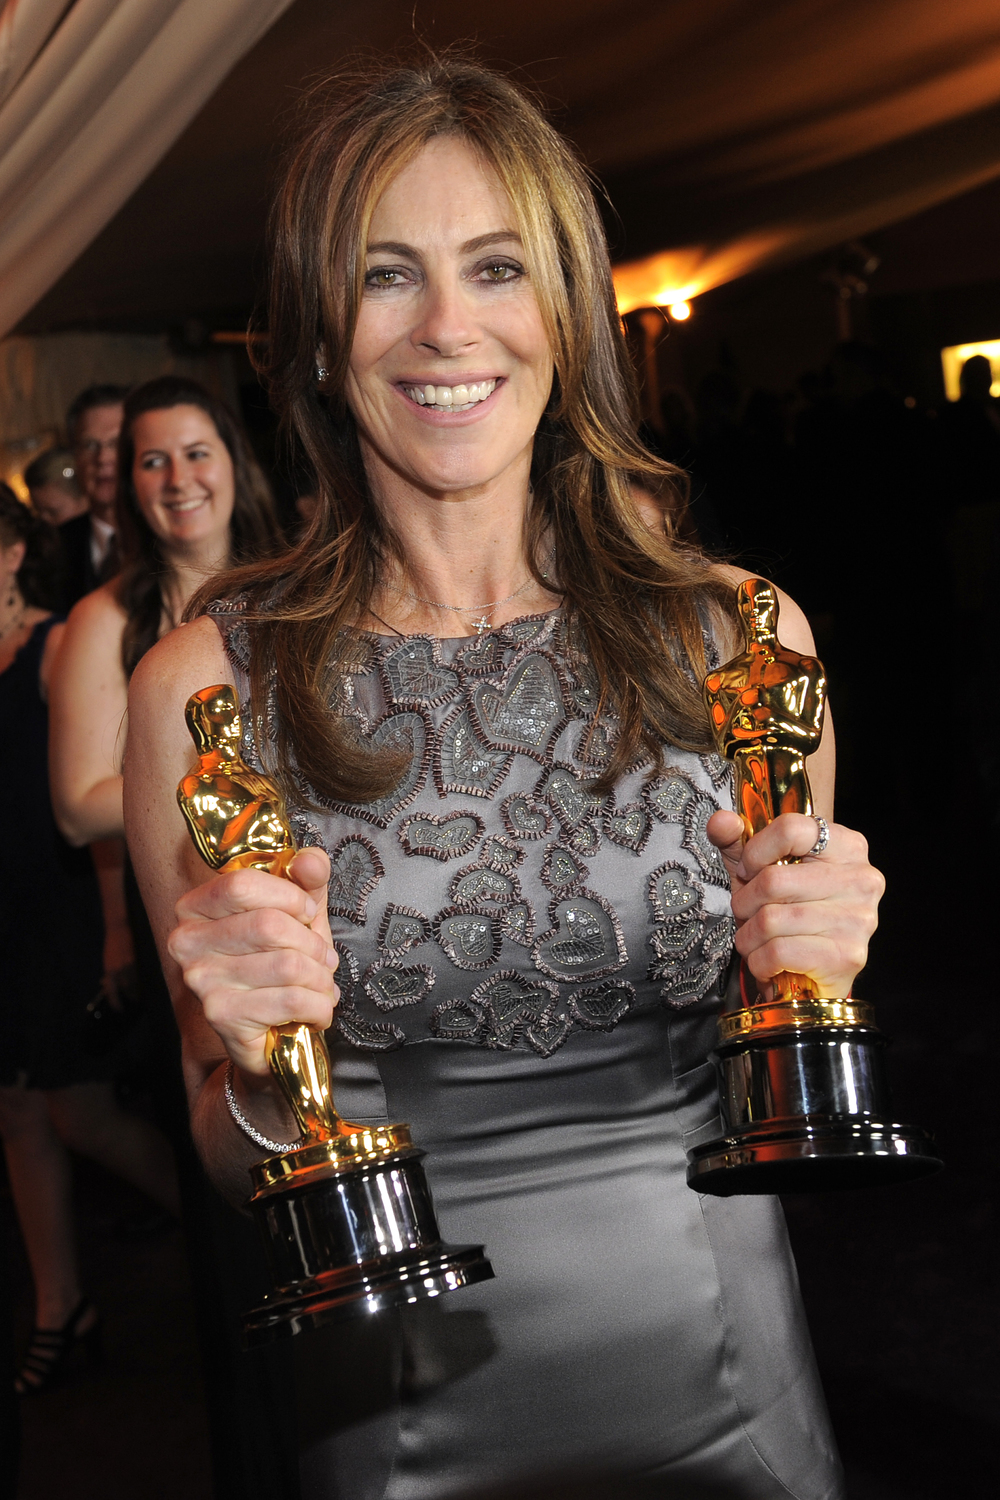 Kathryn-Bigelow-Exclusive-Hot-Pictures.jpg